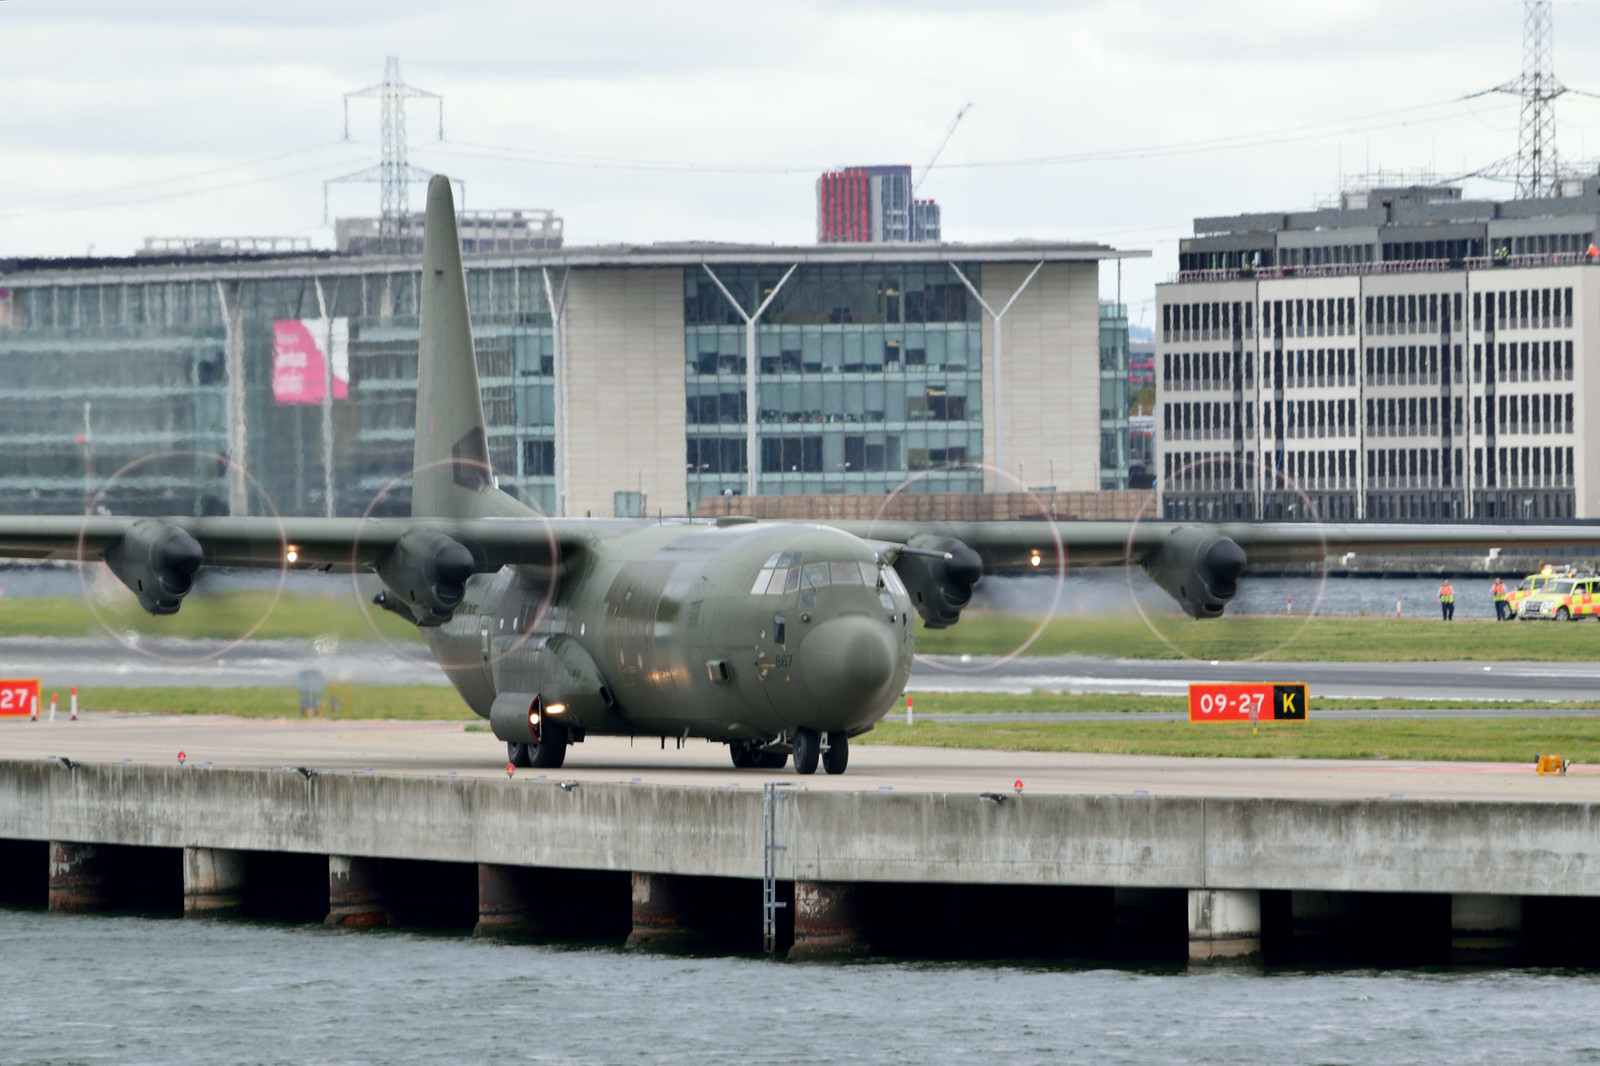 RAF C130J pays first visit to London City Airport on 02/10